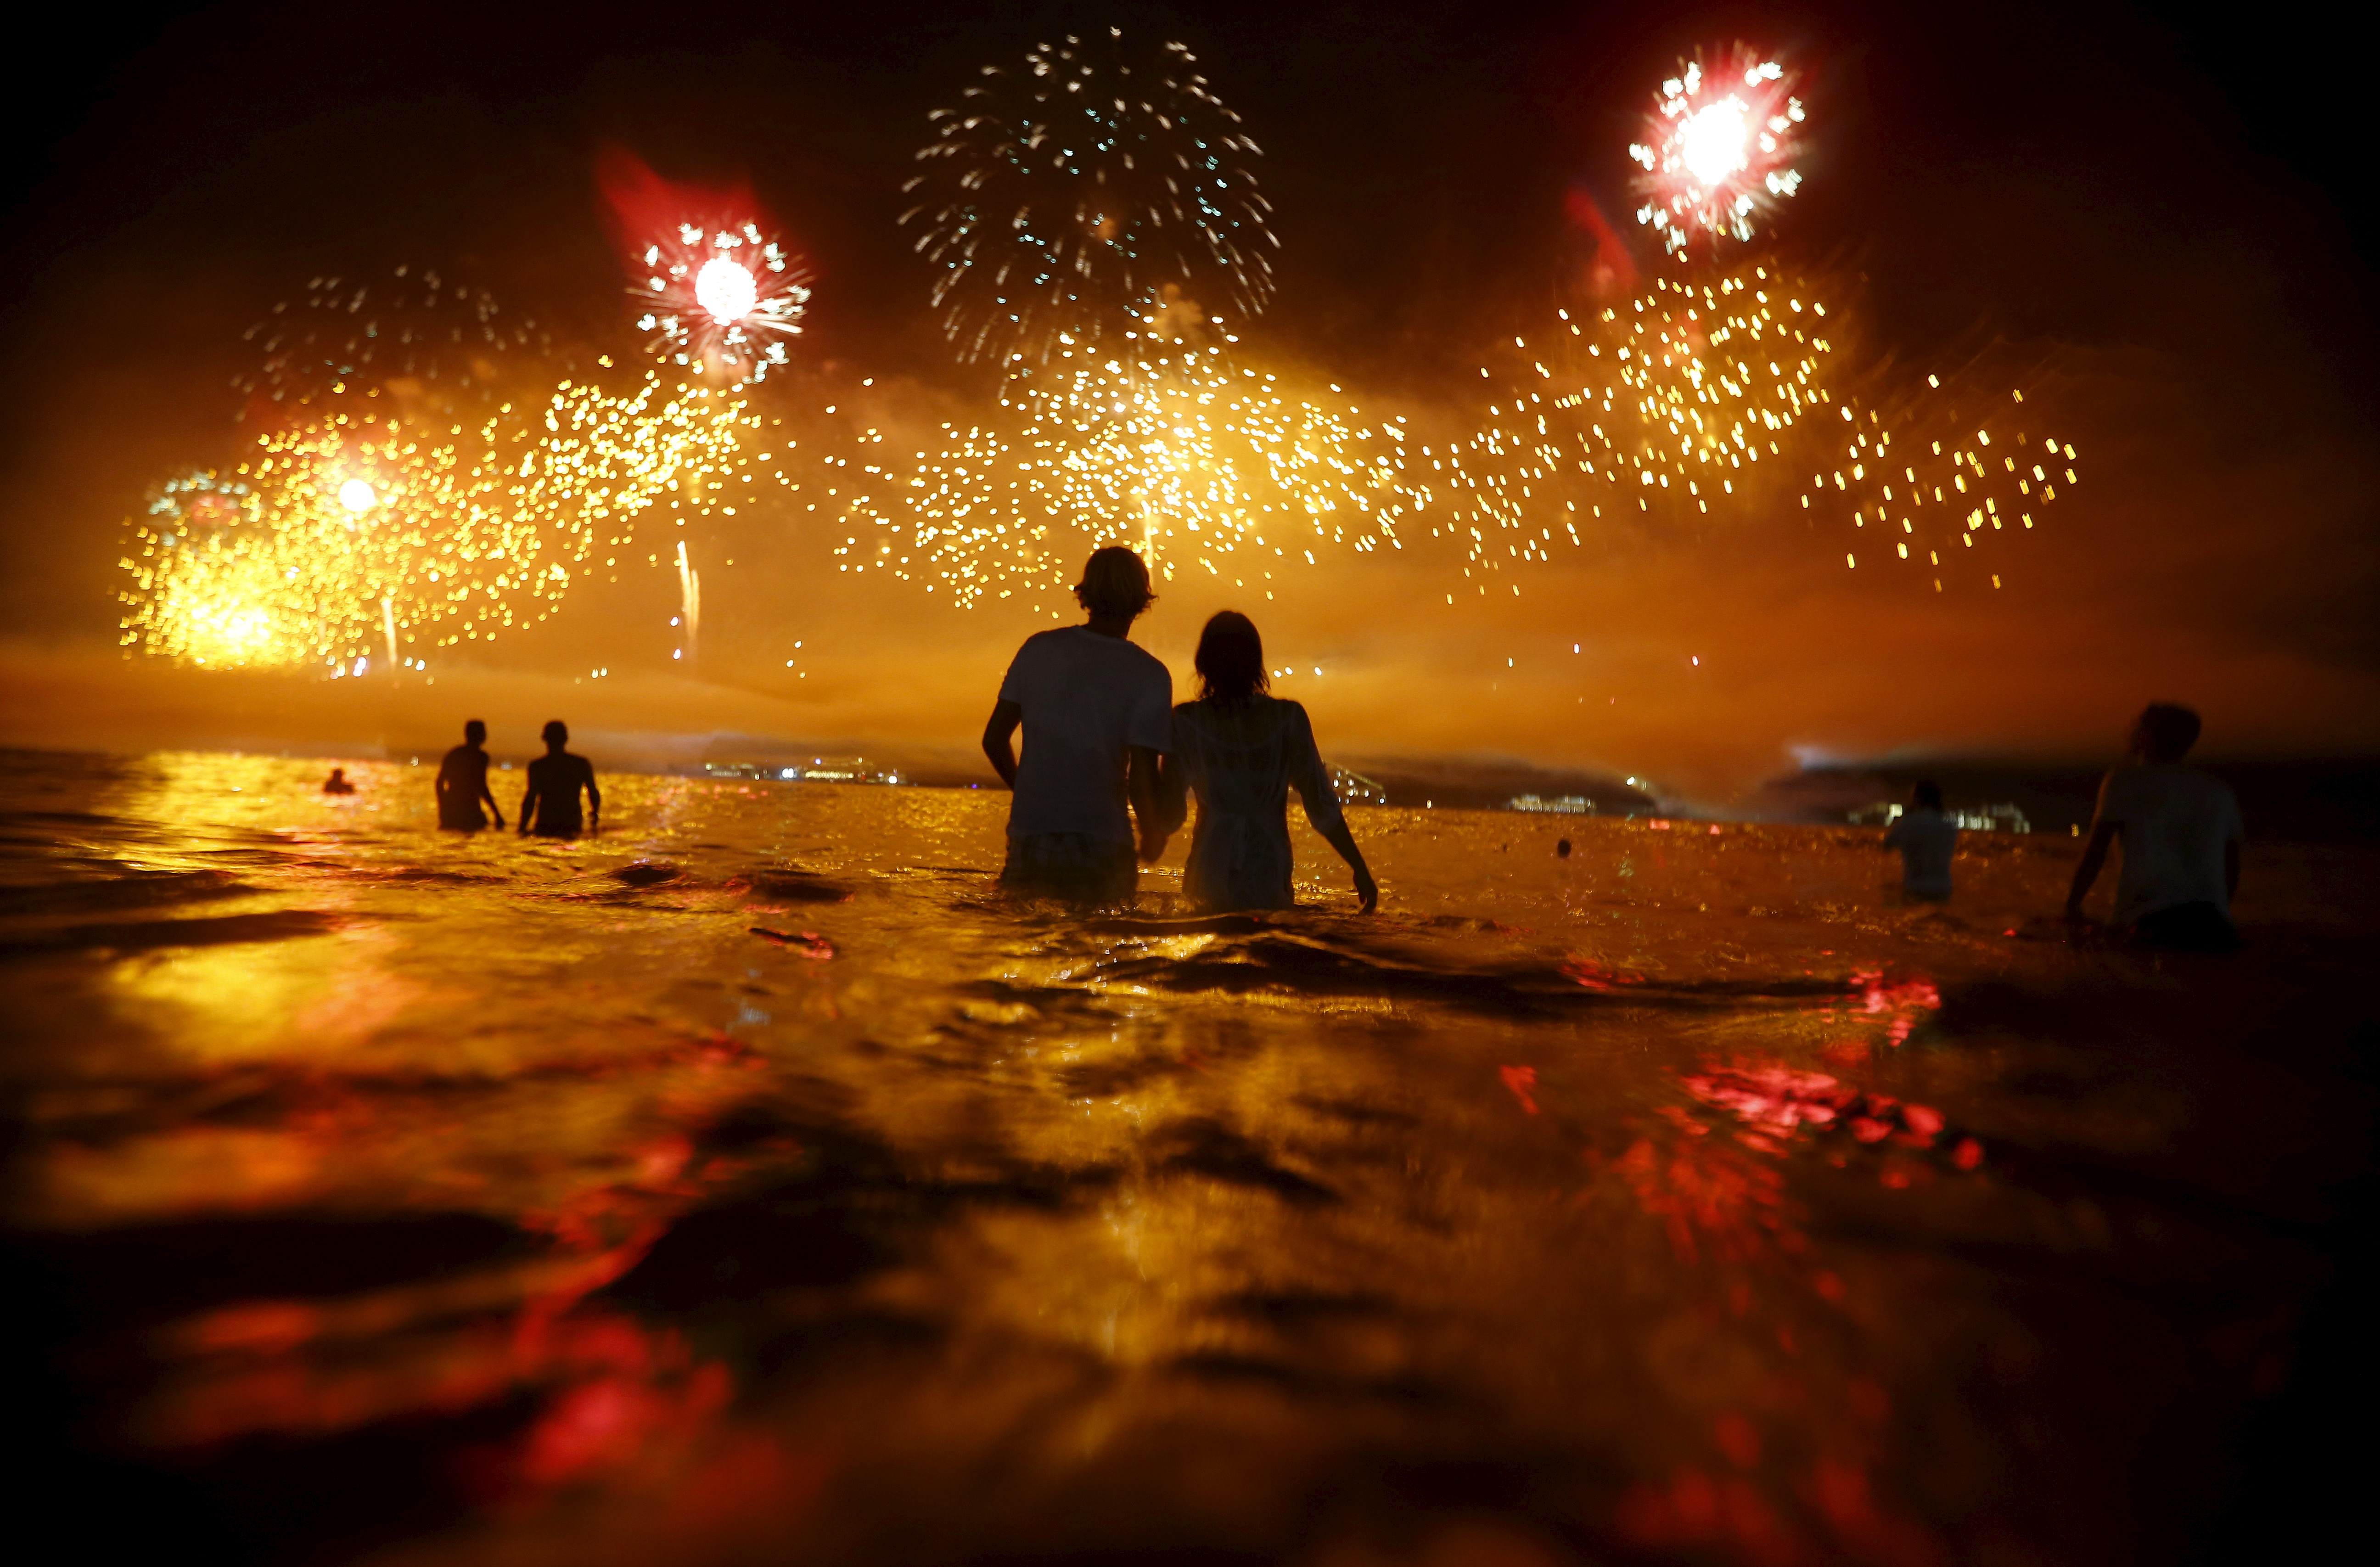 People watch as fireworks explode over Copacabana beach during New Year celebrations in Rio de Janeiro, Brazil. Photo by Ricardo Moraes/Reuters